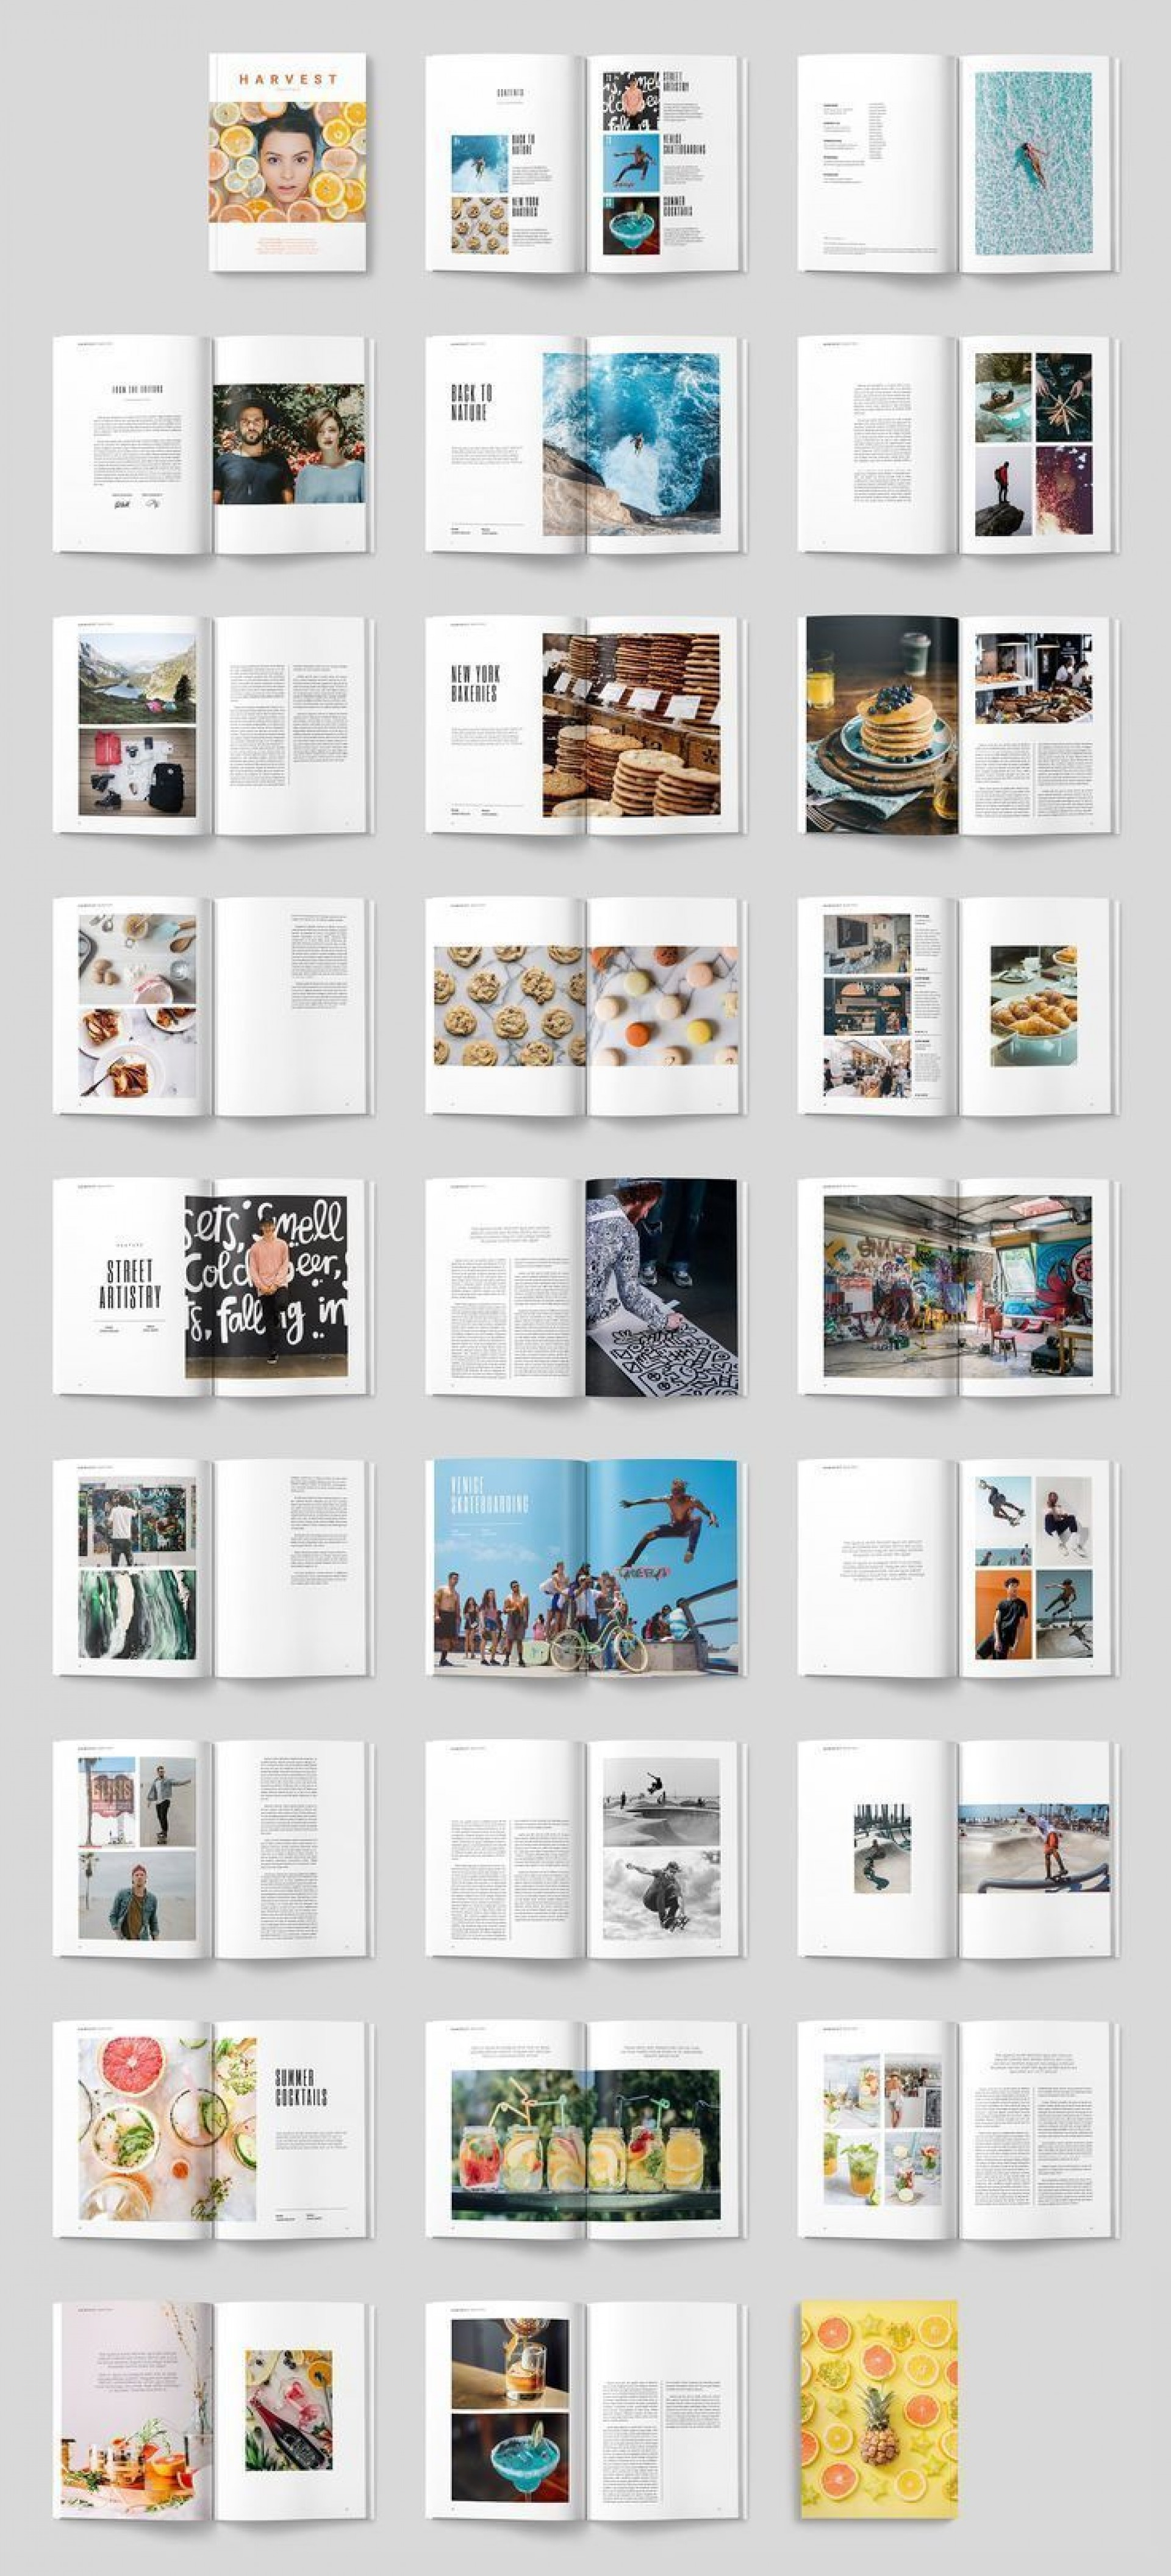 000 Astounding Indesign Magazine Template Free Design  Cover Download Indd Cs51920